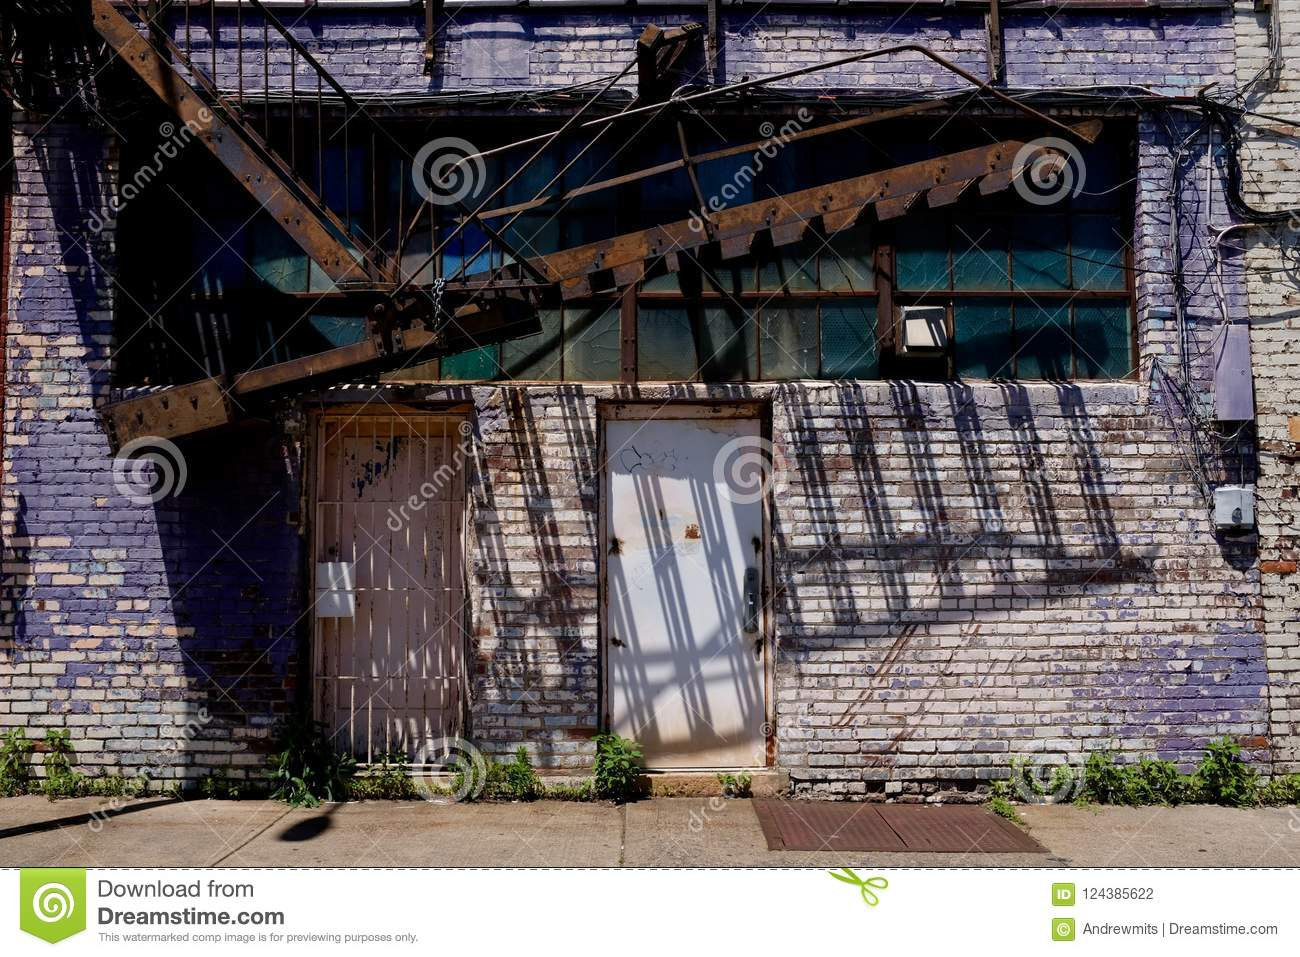 Urban Decay Building With Fire Escape Stock Photo - Image of